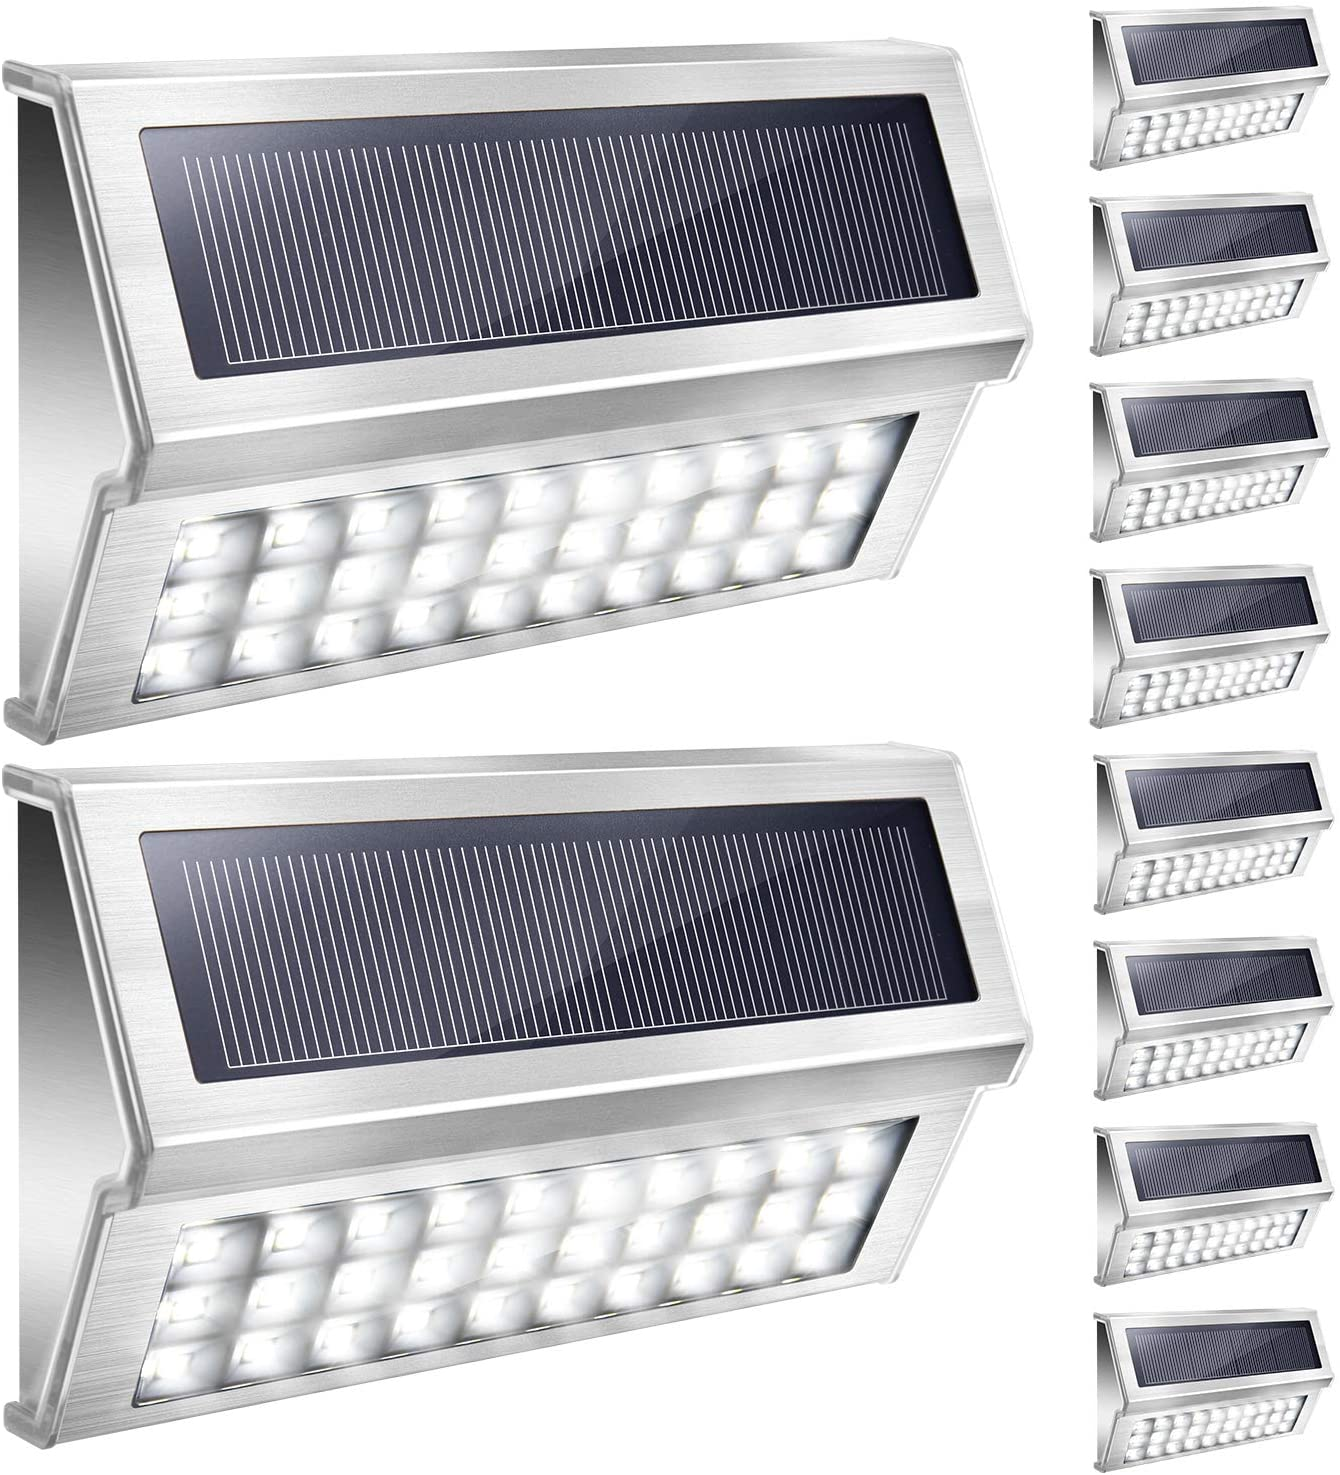 JACKYLED 10Pack Solar Step Lights Upgrade 30 LED Bright Cool White Stainless Steel Solar Stair Lights with 1600mAH Battery Outdoor Waterproof Wireless Deck Security Lighting for Walkway Fence Yard